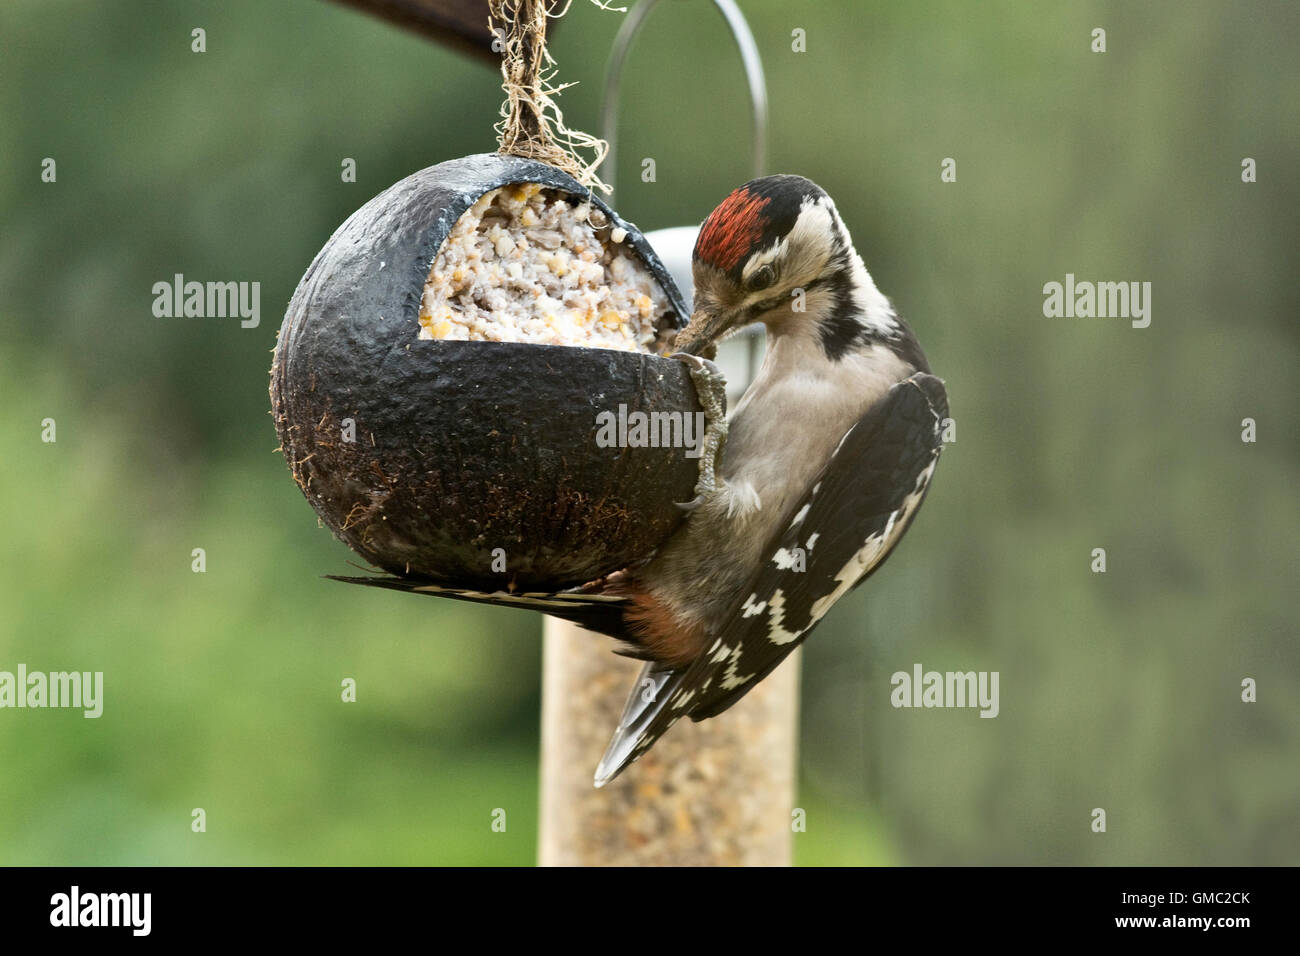 A juvenile great spotted woodpecked, Dendrocopos major, feeding from a fat and seed filled coconut shell - Stock Image